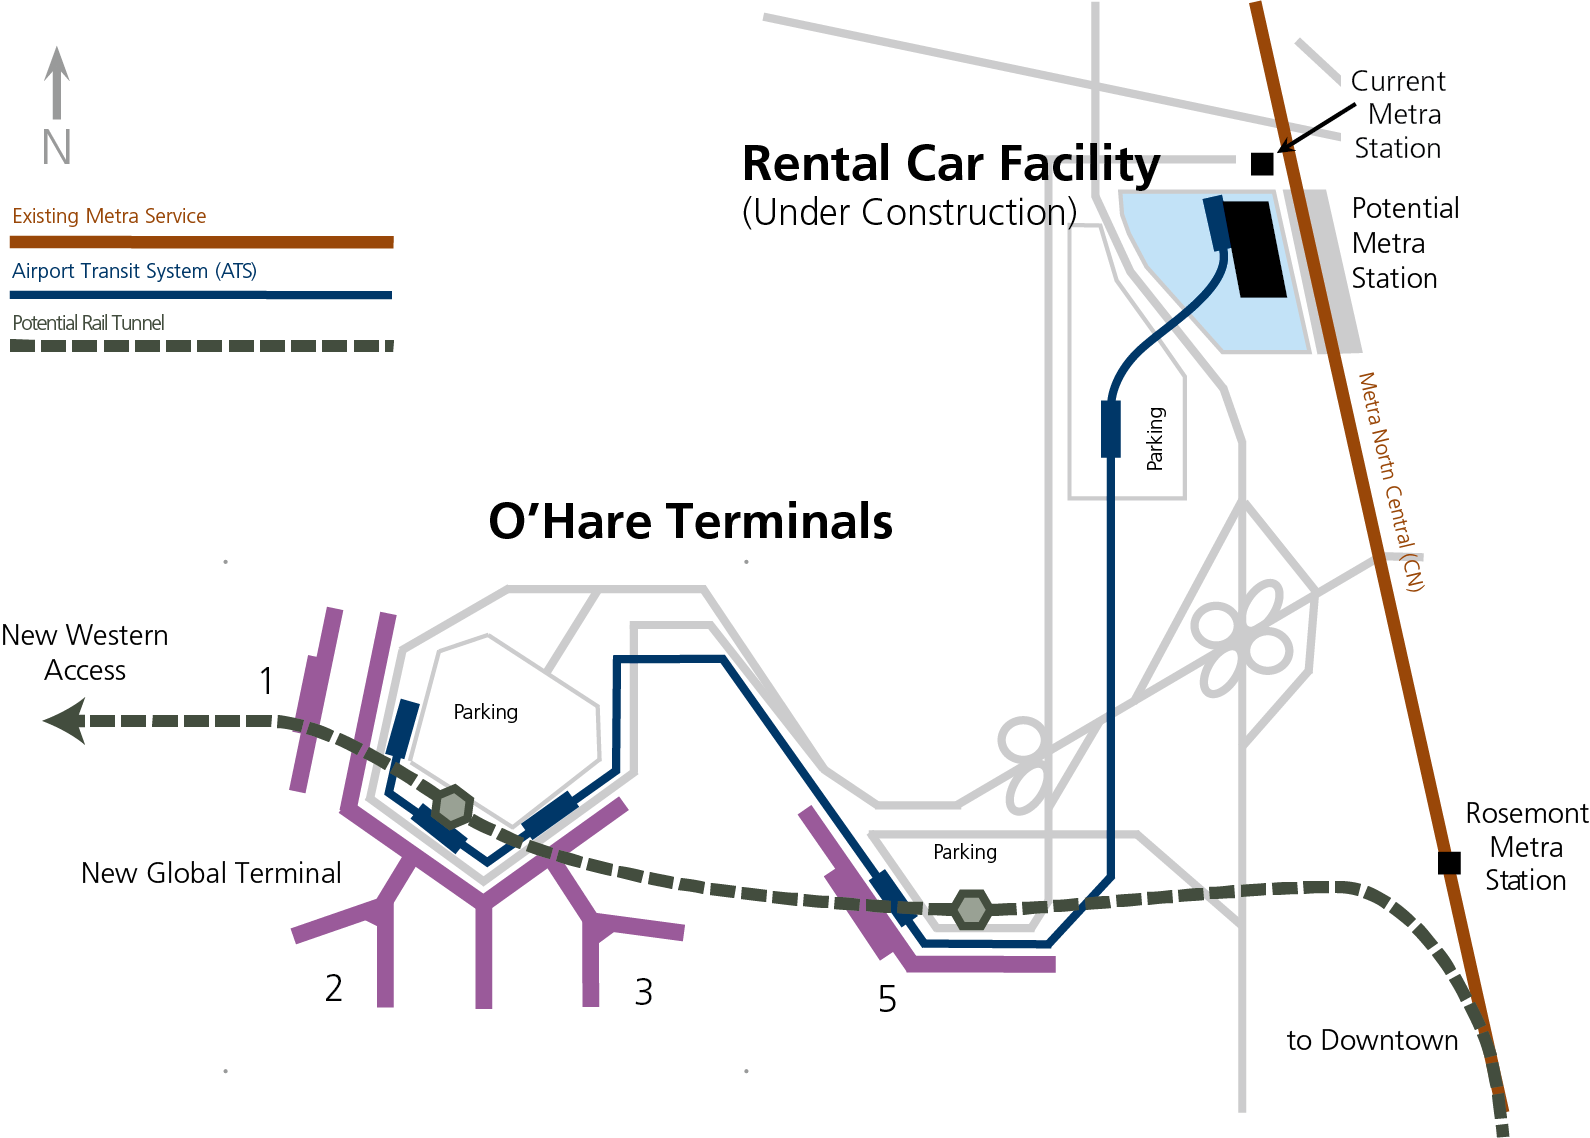 Where are the trains in $8.5 billion O'Hare plan? | High ... on chicago o'hare parking map, chicago subway map with streets, chicago south shore train map, chicago midway train map, chicago orange line train map, chicago blue line train map, chicago loop train map, o'hare arrivals map, chicago o'hare road map, columbus ohio rail map, o'hare airport map, hare chicago airport terminal map, chicago o'hare airline map, elevated train chicago map, chicago el train map, chicago l stations map, chicago airport train map, cta map,